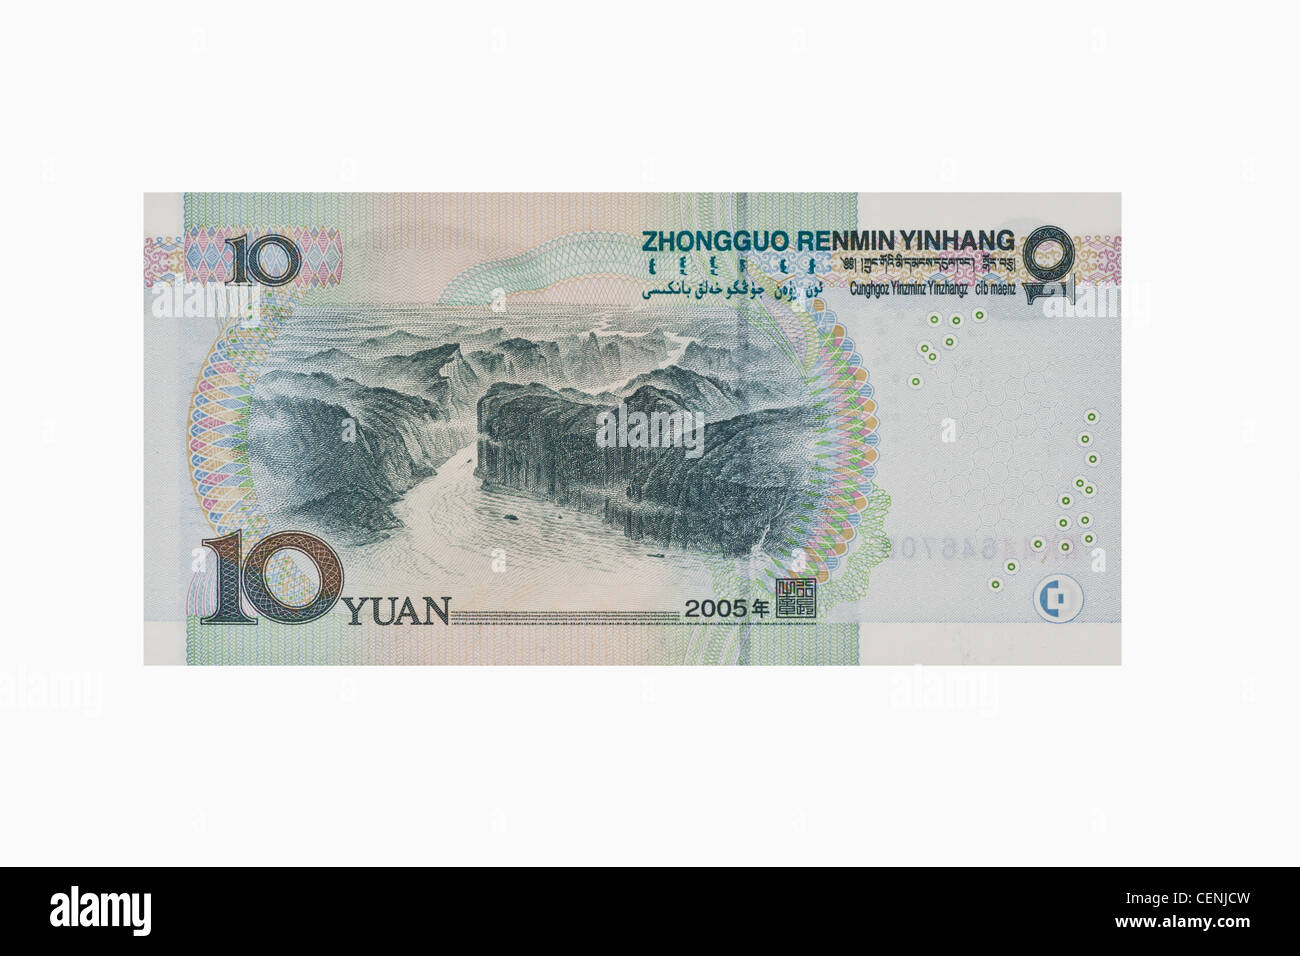 Back side of the 10 yuan bill. The renminbi, the Chinese currency, was introduced in 1949 after the founding of - Stock Image